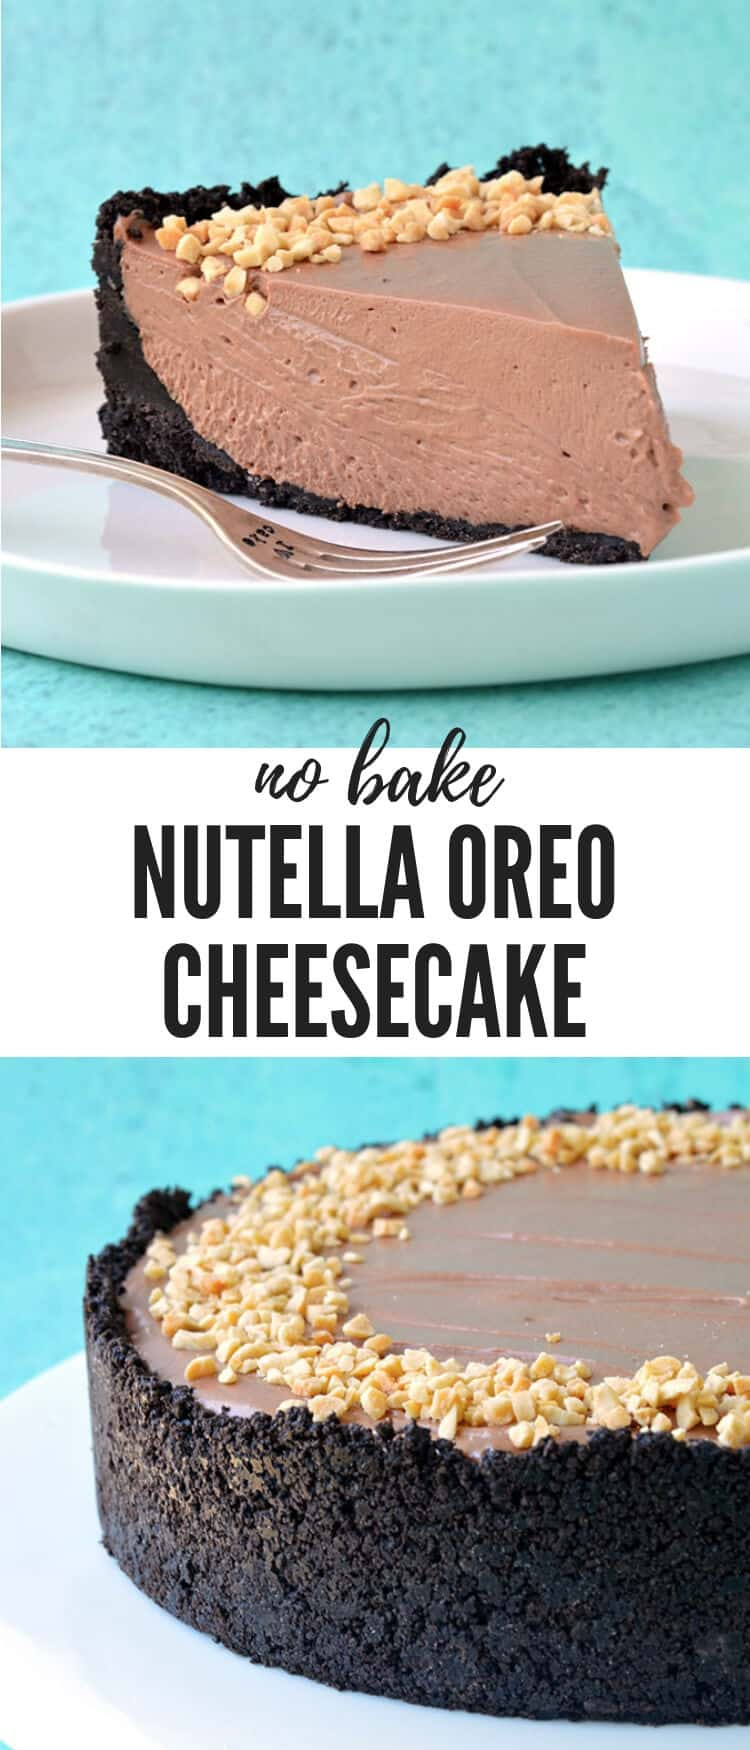 A deliciously rich and creamy Nutella Oreo Cheesecake. This gorgeous no bake cheesecake - made without gelatine - boasts a crunchy Oreo crust and a creamy Nutella cheesecake filling, all topped with roasted hazelnuts. Recipe from sweetestmenu.com #cheesecake #chocolate #oreos #nutella #nobake